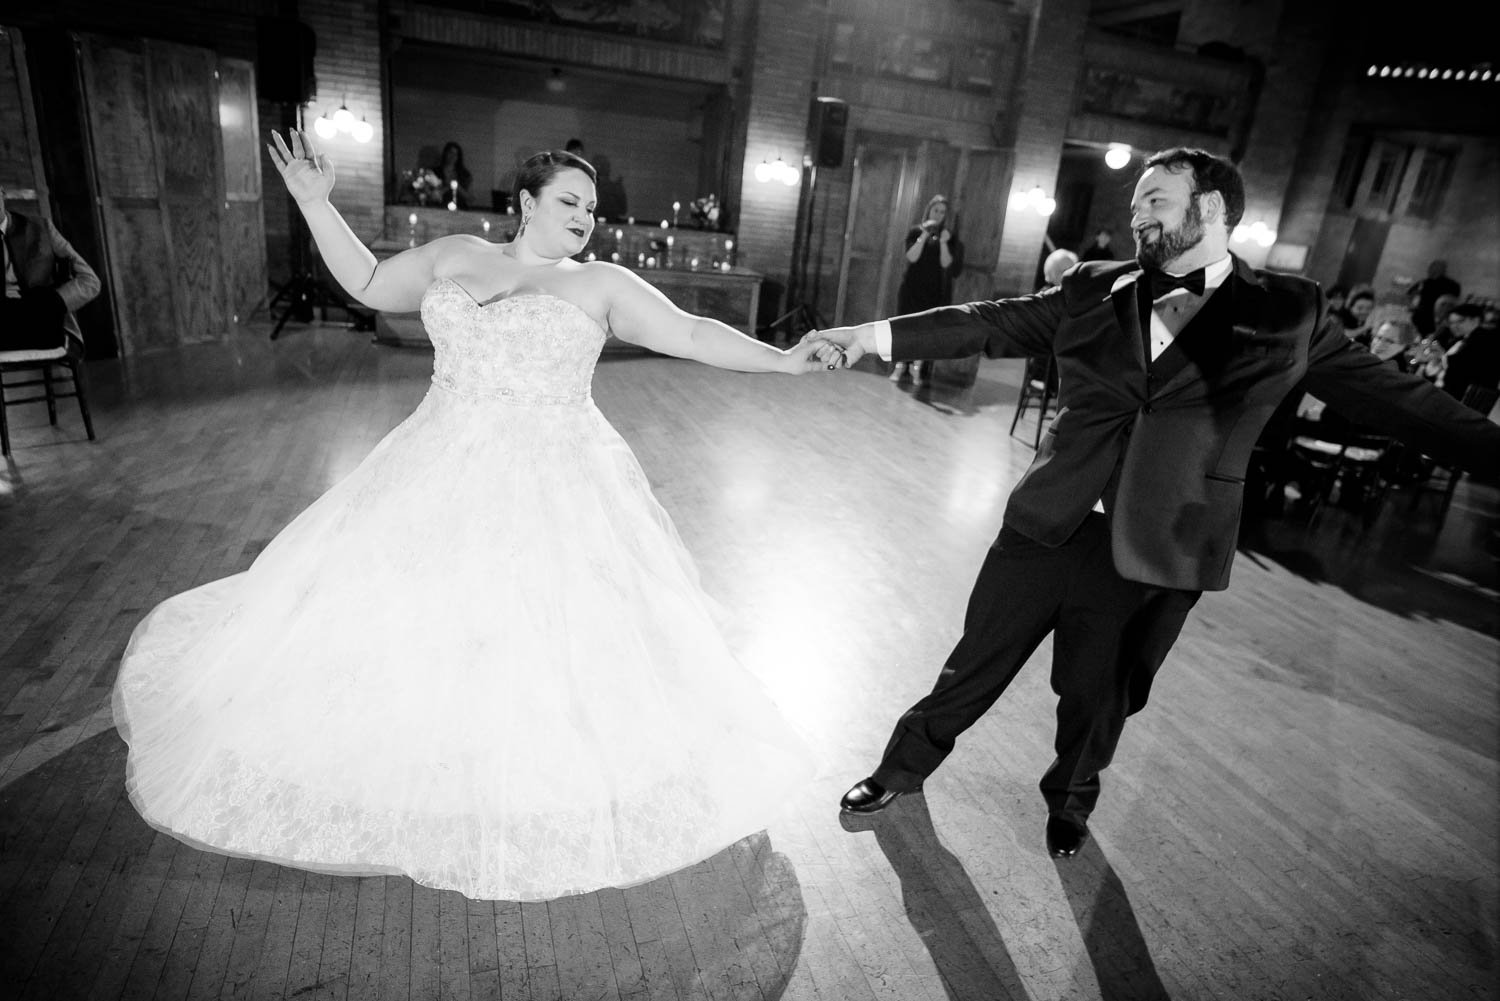 Couple's first dance during their Cafe Brauer wedding reception.